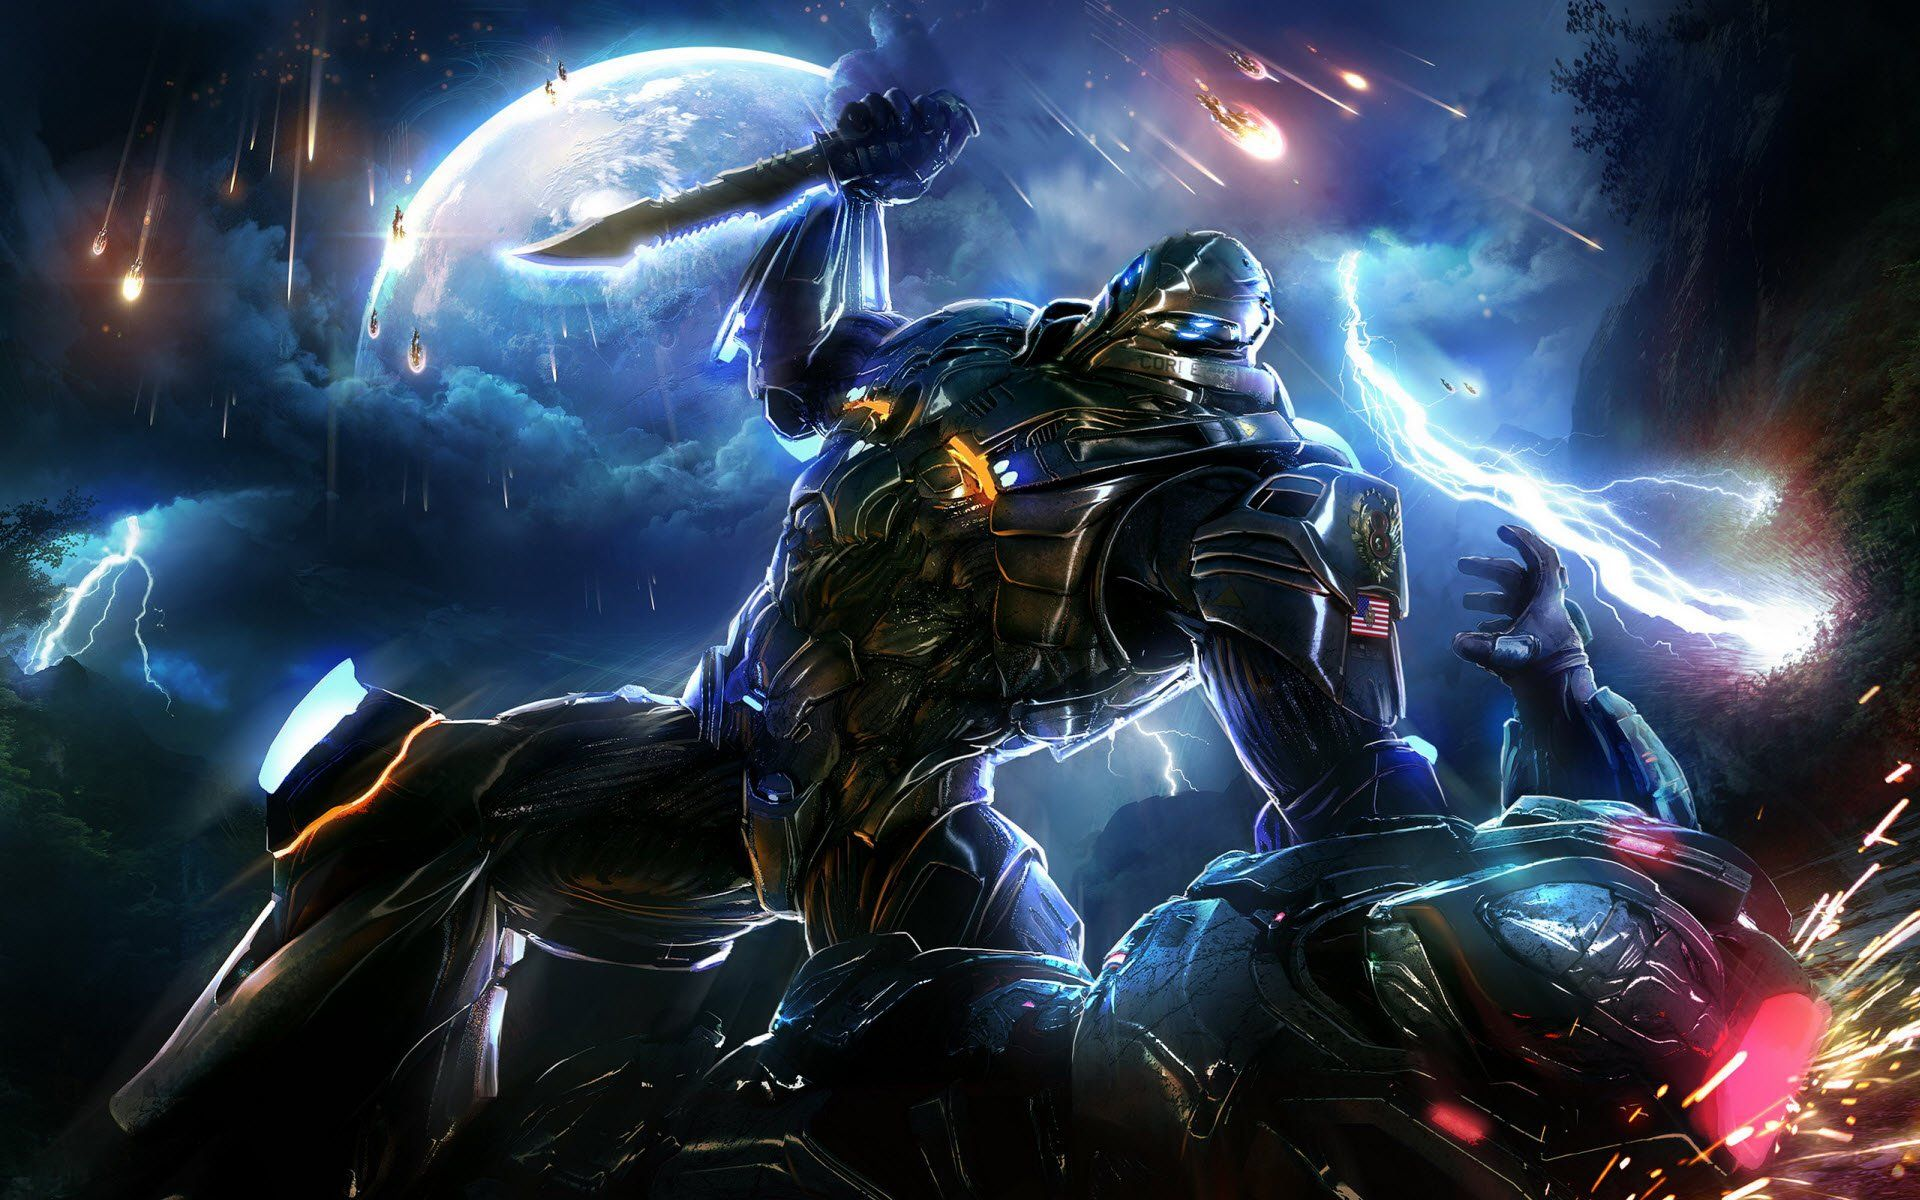 Games Photo Gallery Pc Games Wallpapers Robot Wallpaper Supe